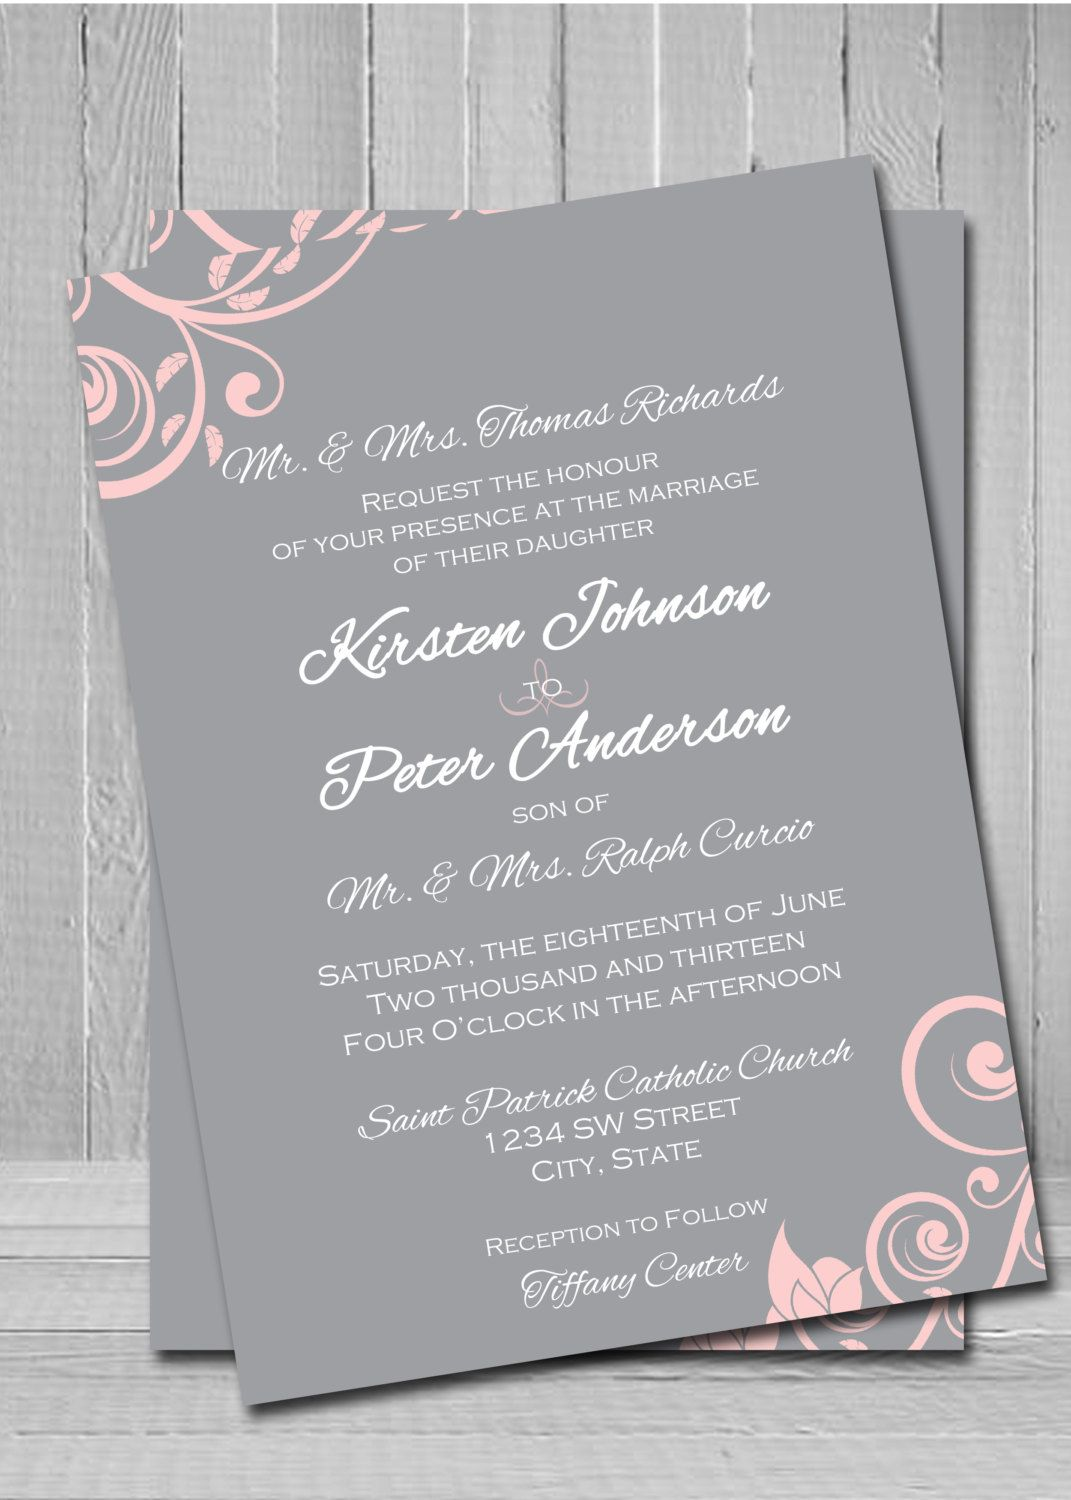 Grey and pink wedding invitationI would switch